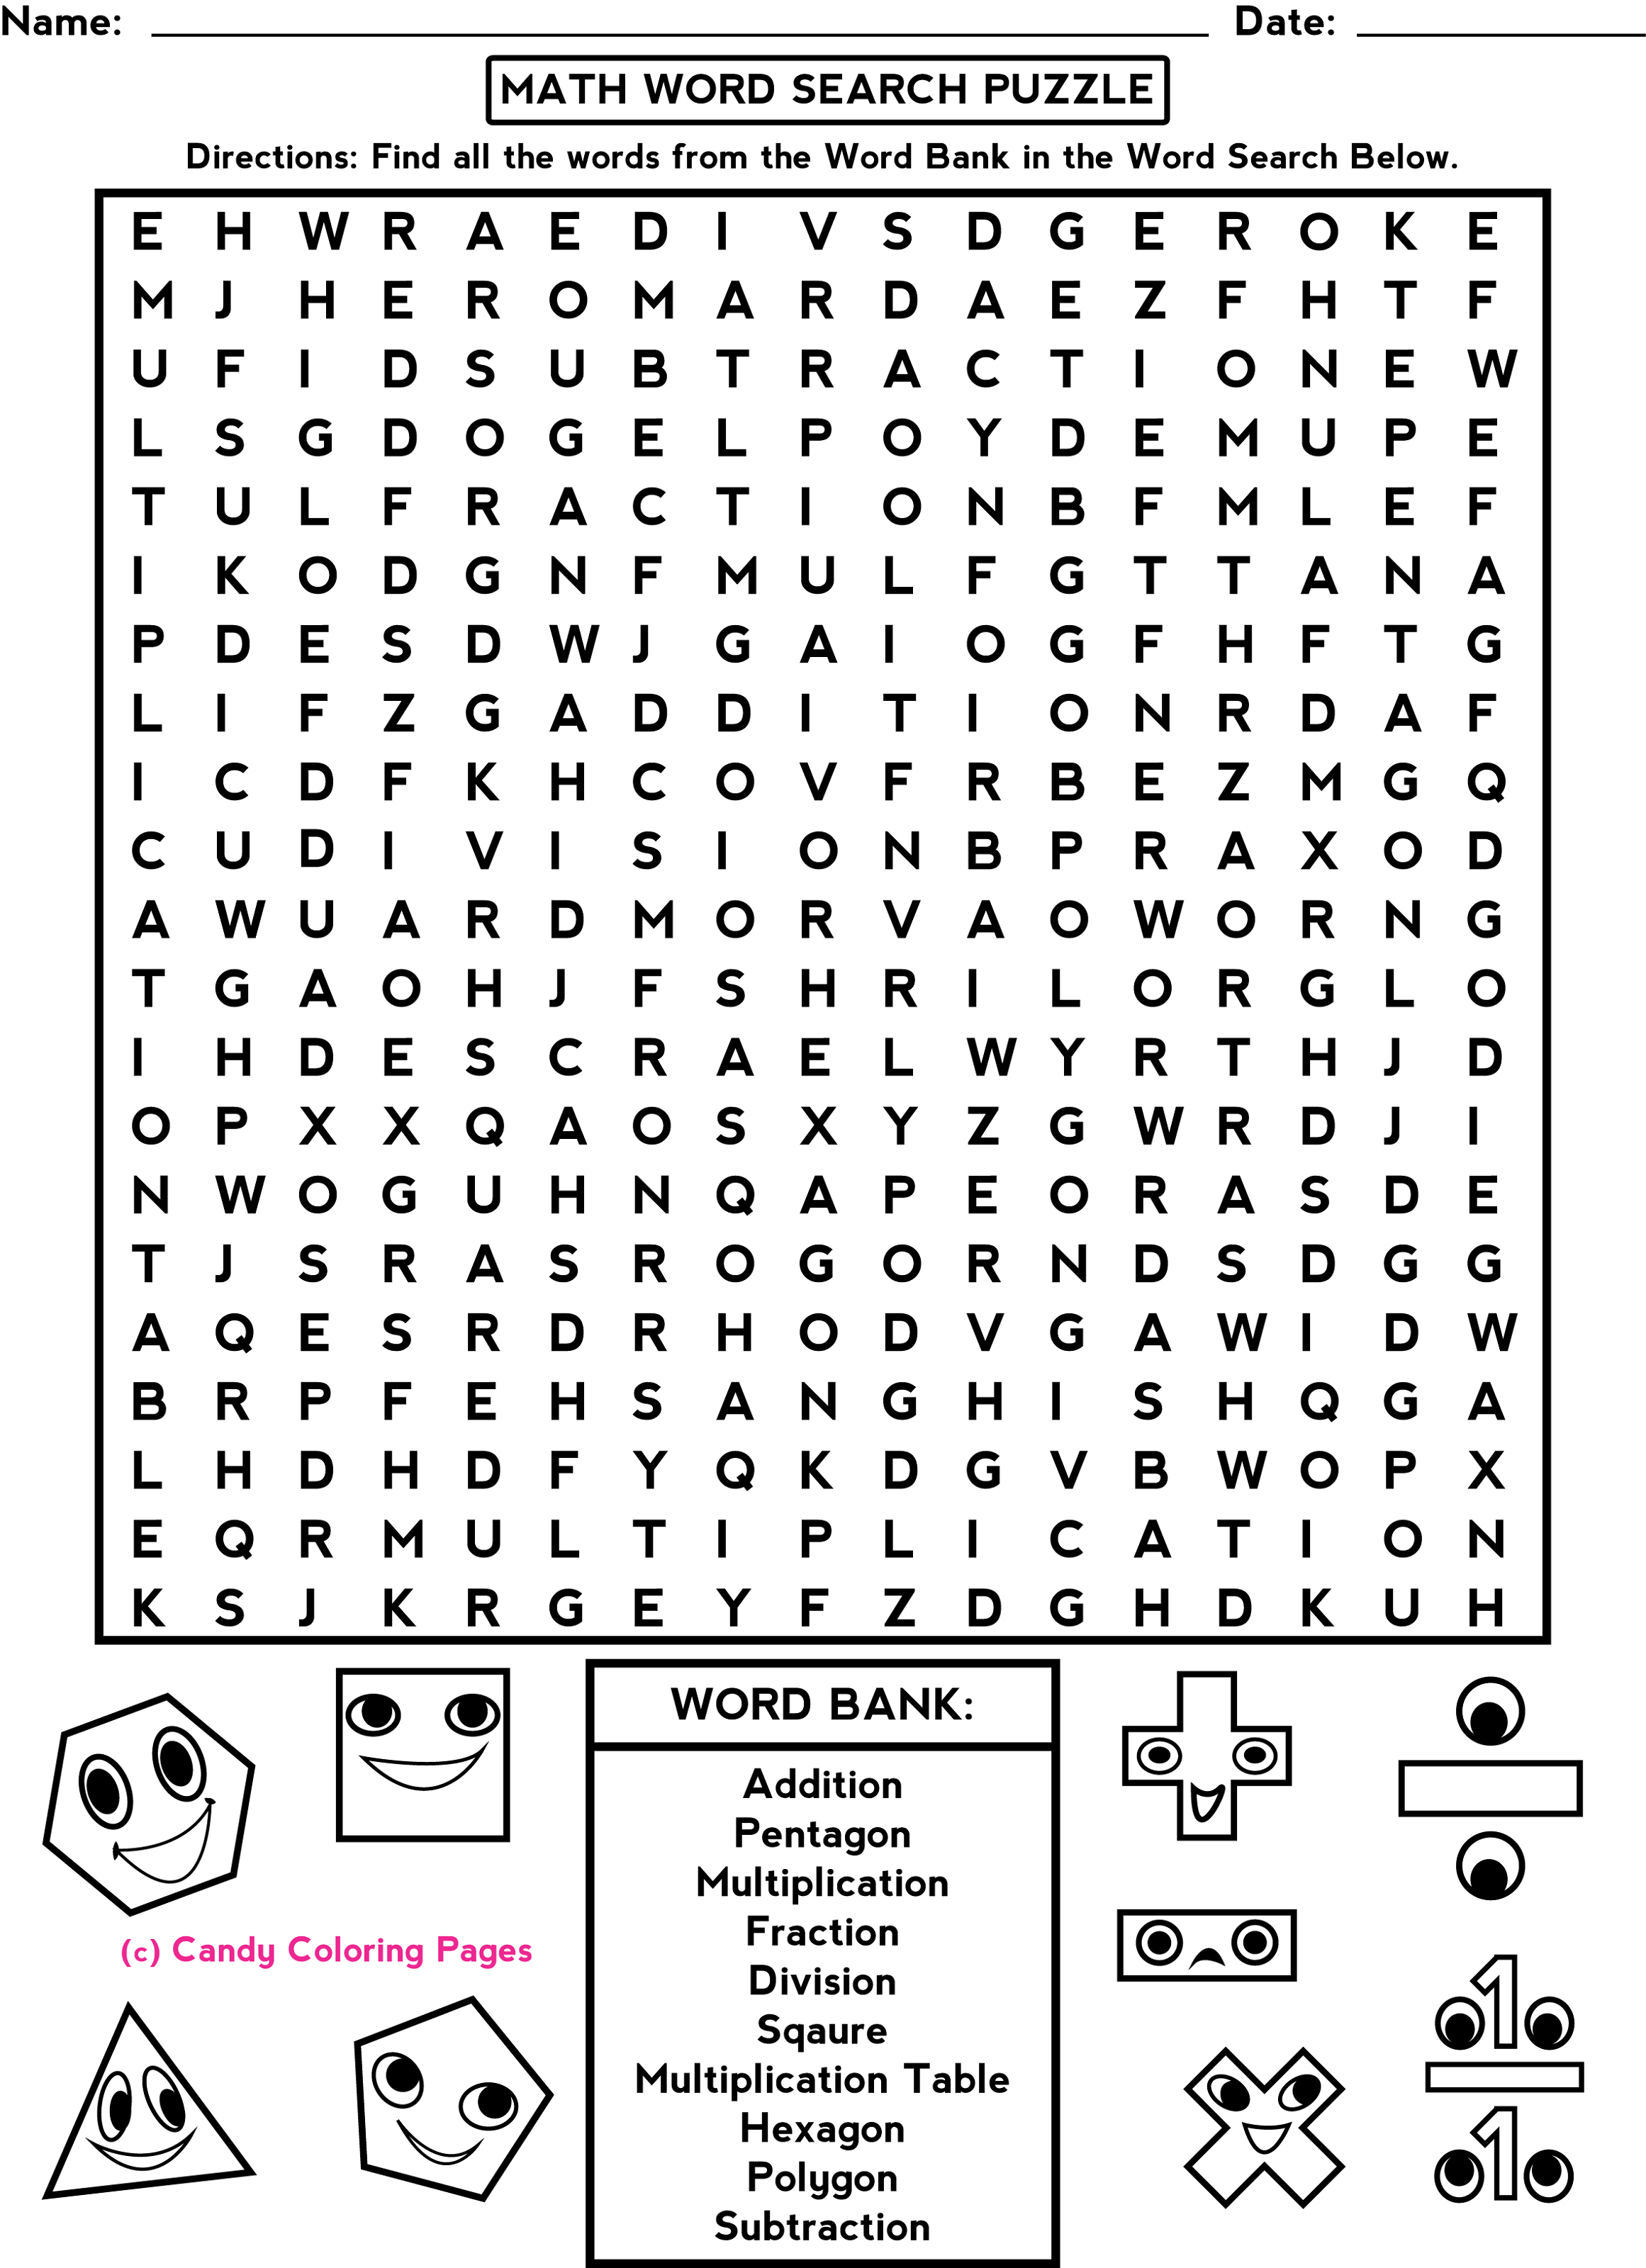 Worksheets Fun Math Worksheets For 3rd Grade worksheet 3rd grade activity sheets wosenly free fun 6th math worksheets for teachers 5 fraction vcpcfg cl